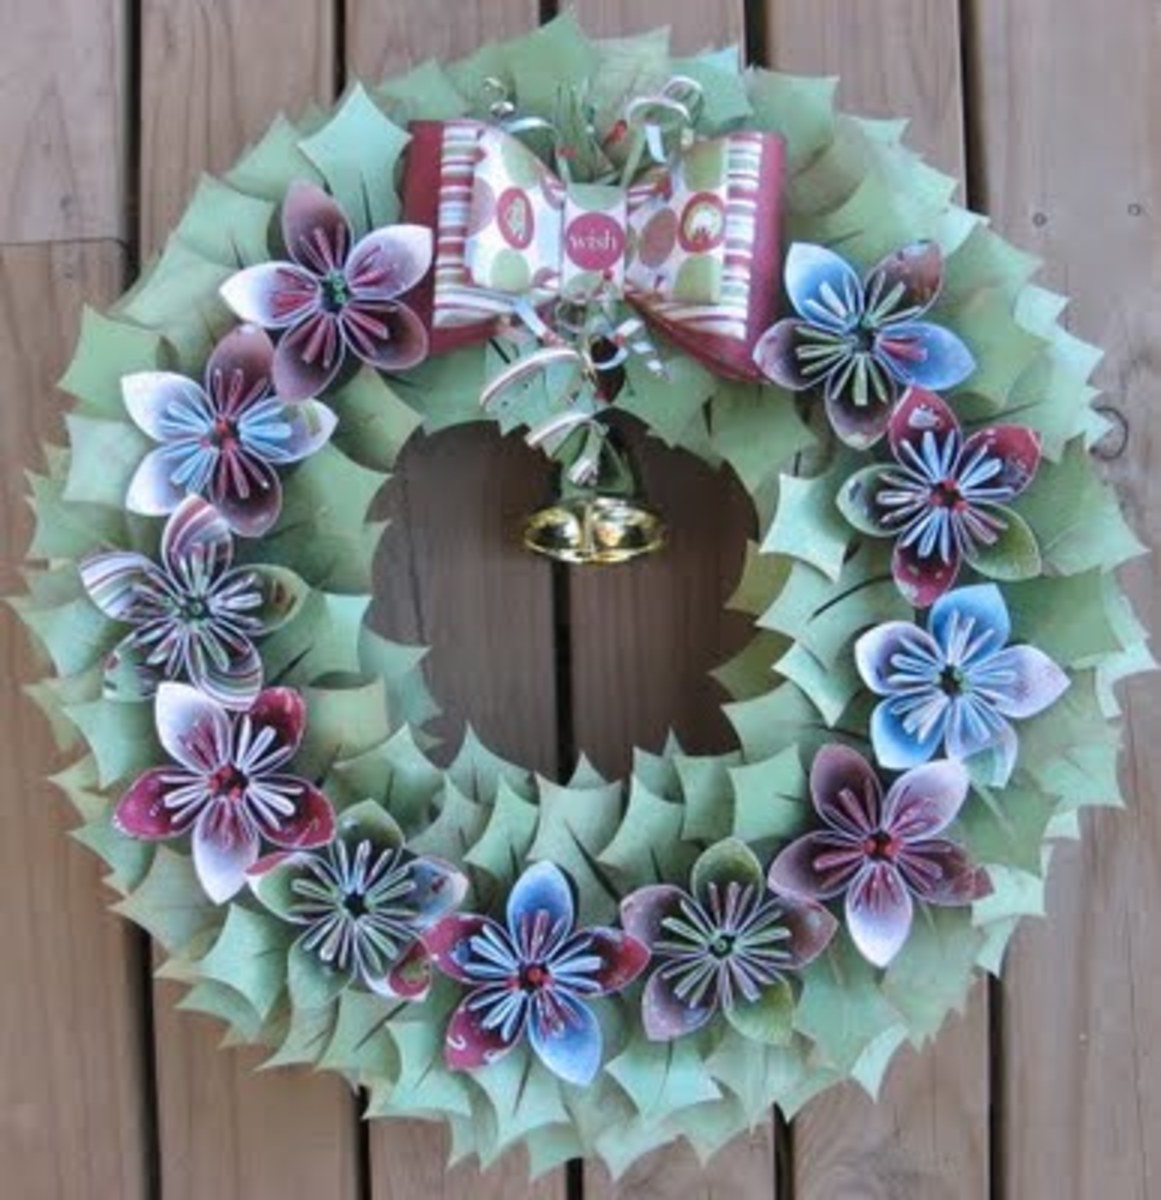 Paper Christmas Wreath thescrapfarm.blogspot.com